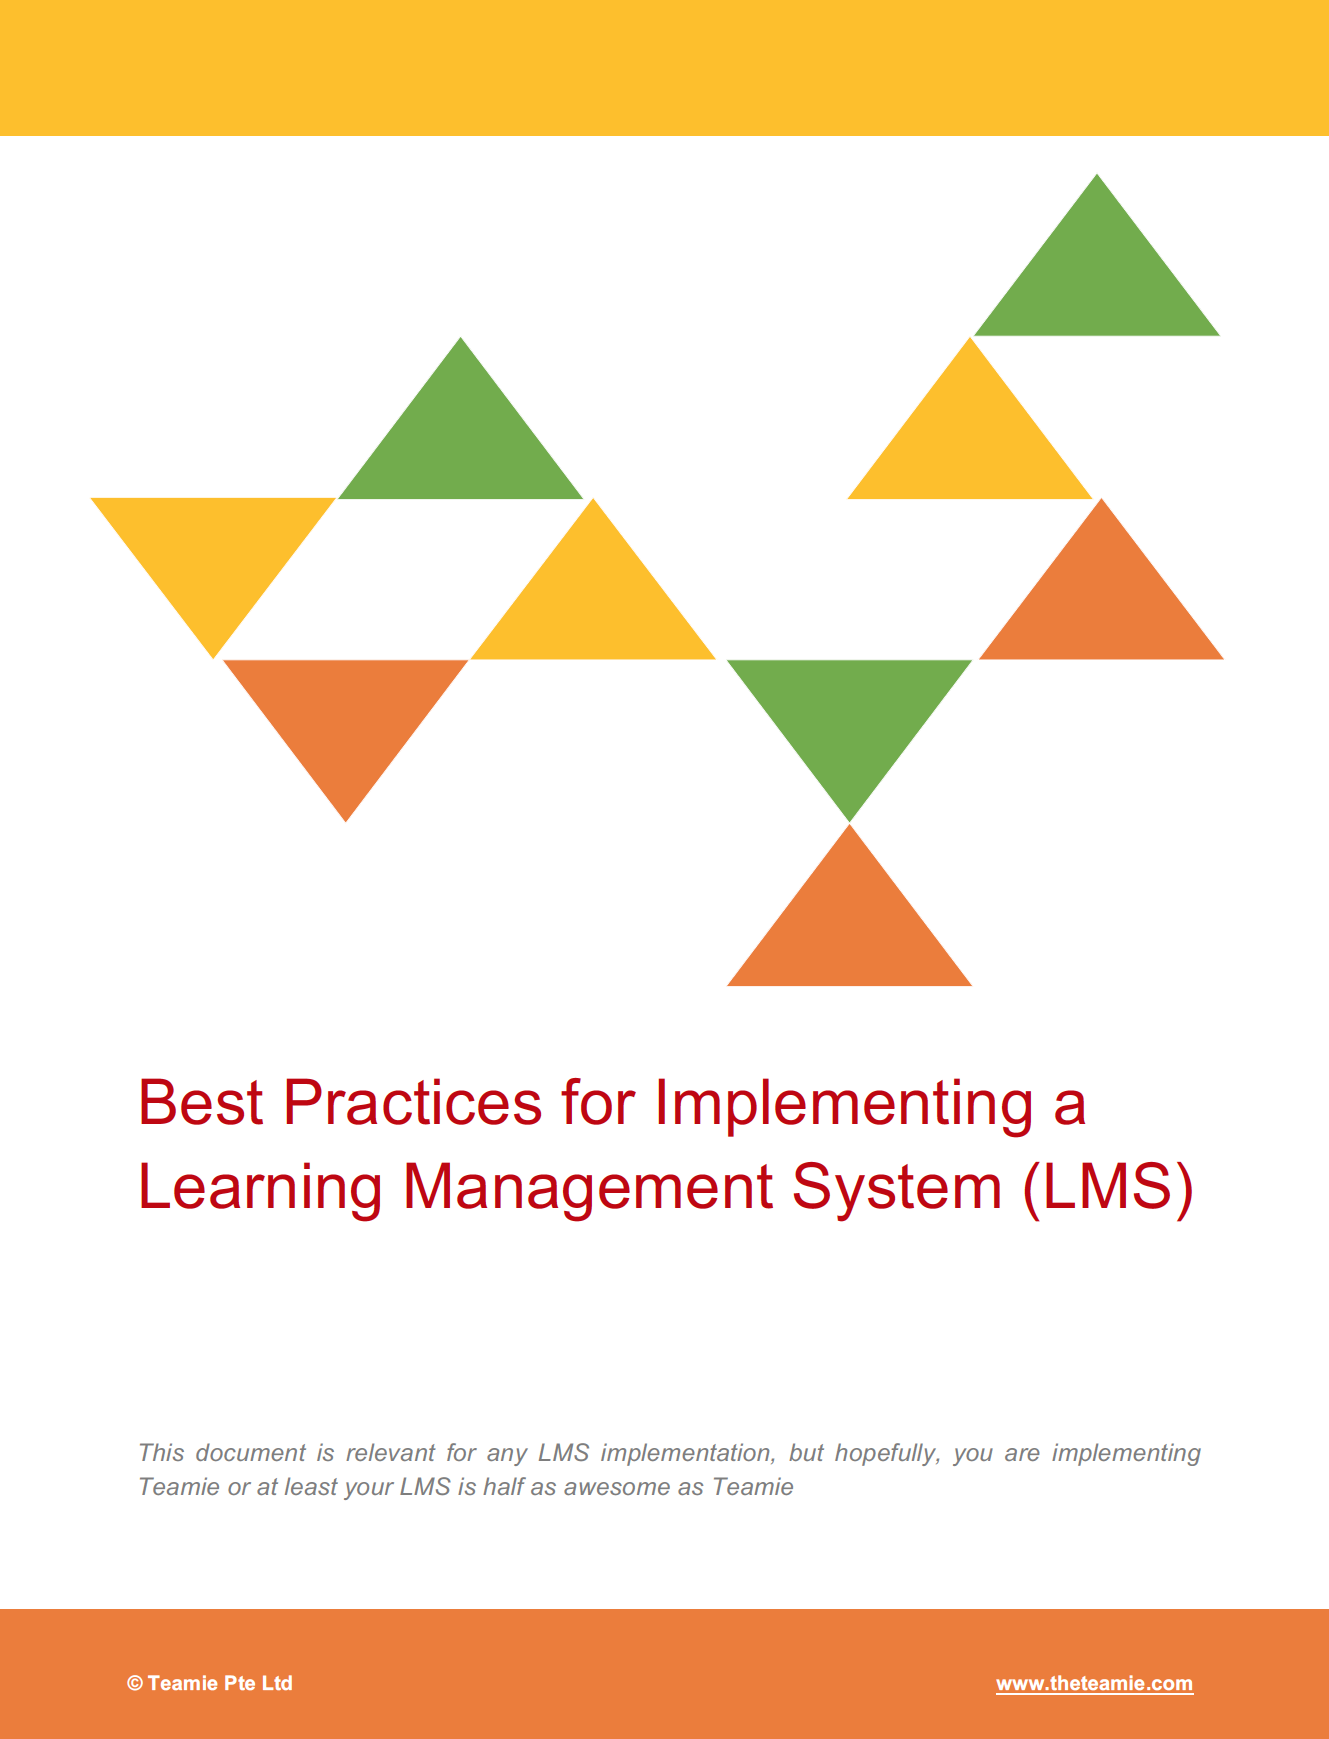 Best Practices for Implementing an LMS.png